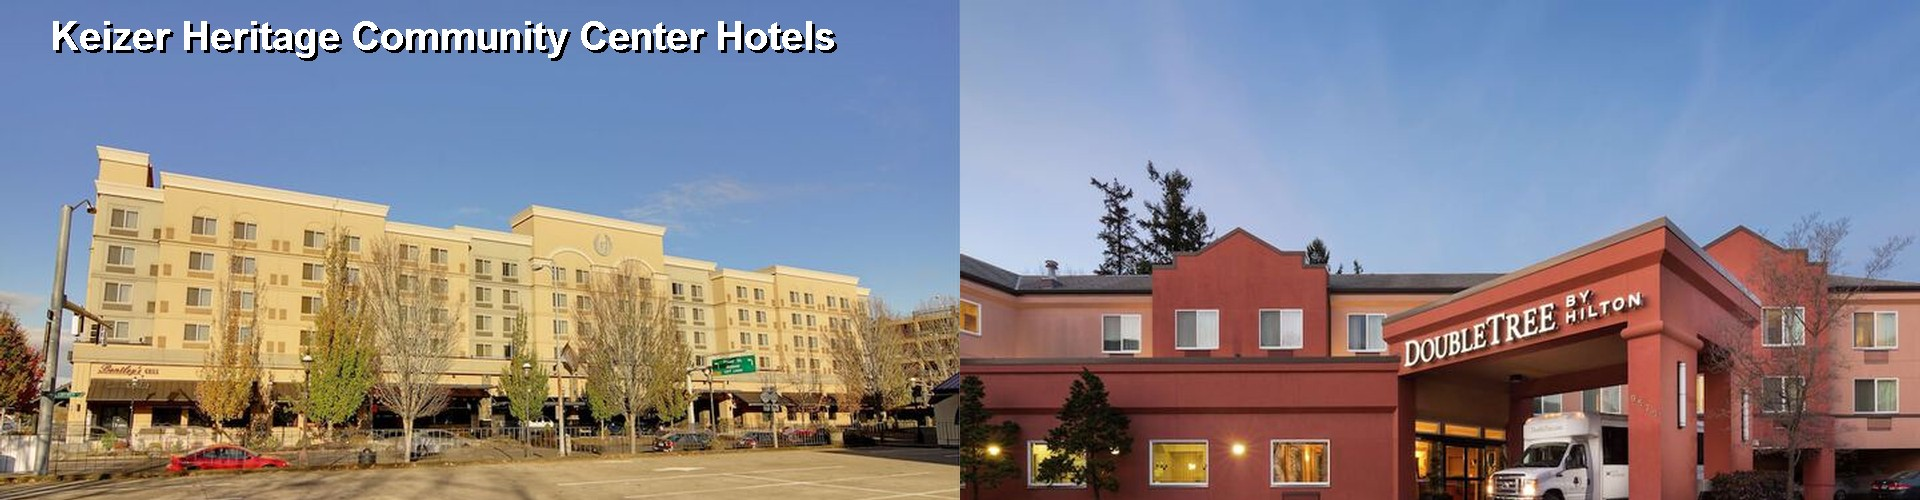 5 Best Hotels near Keizer Heritage Community Center